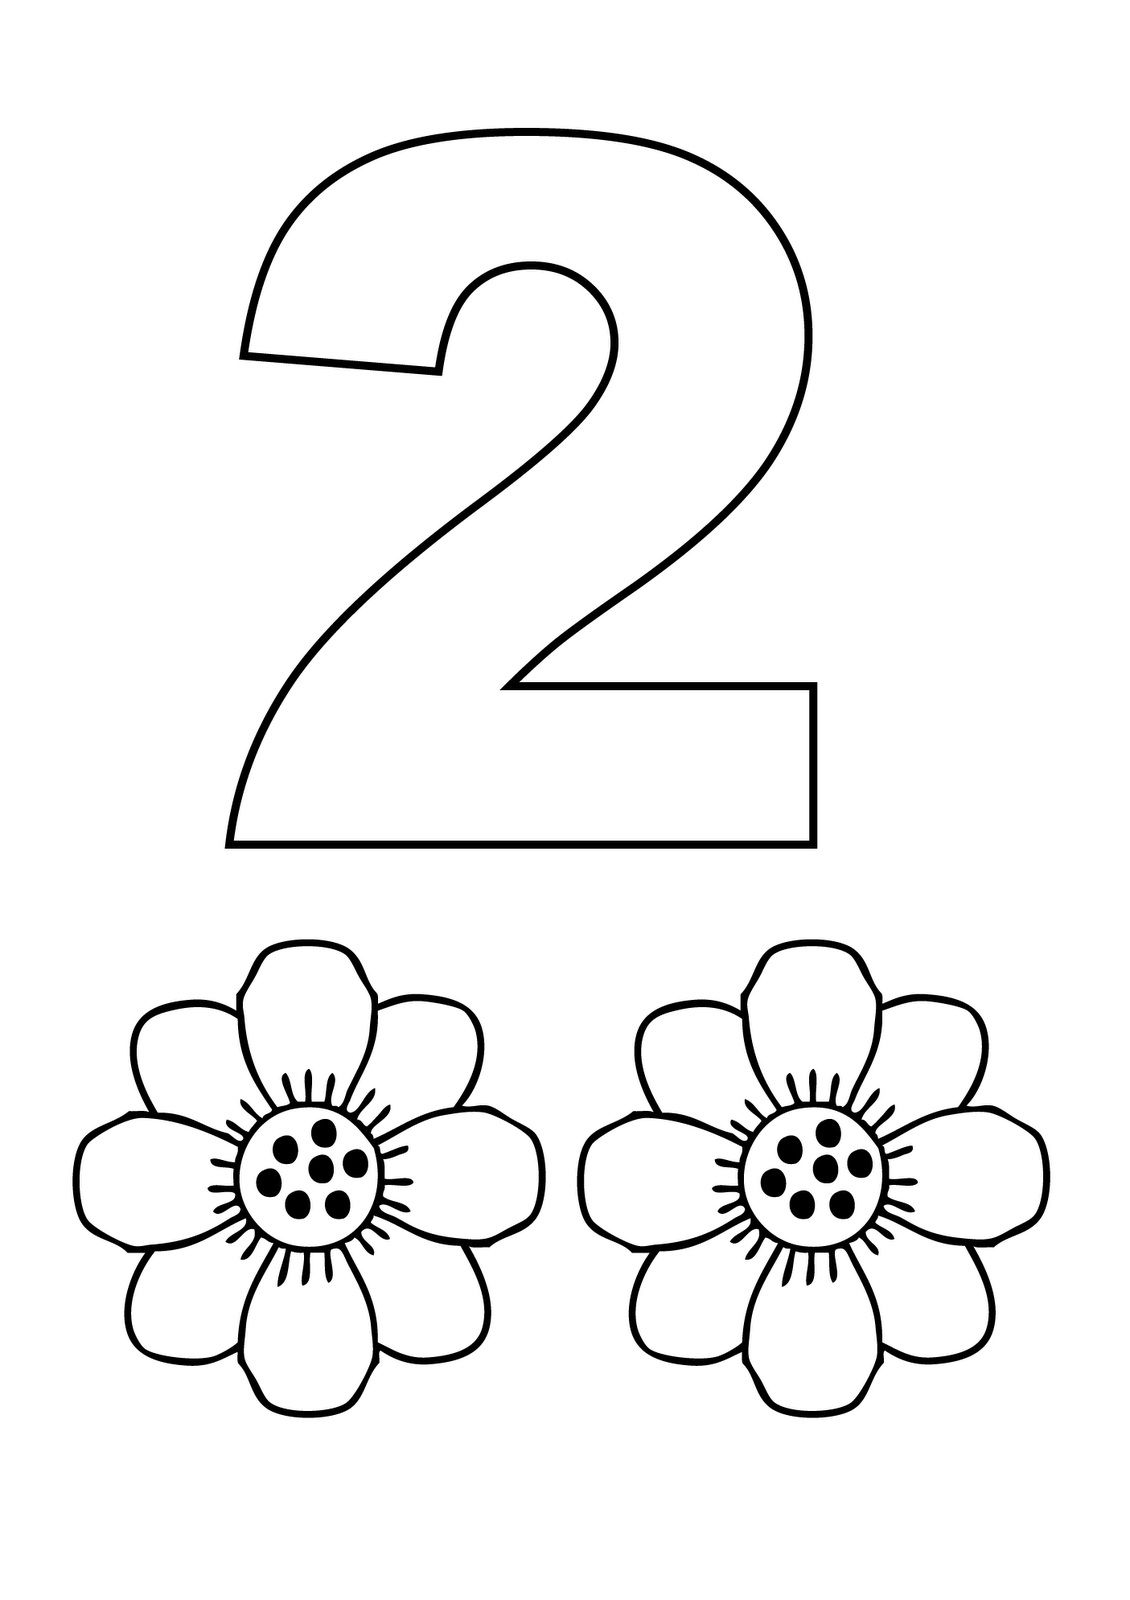 Free Printable Number Coloring Pages For Kids Numbers